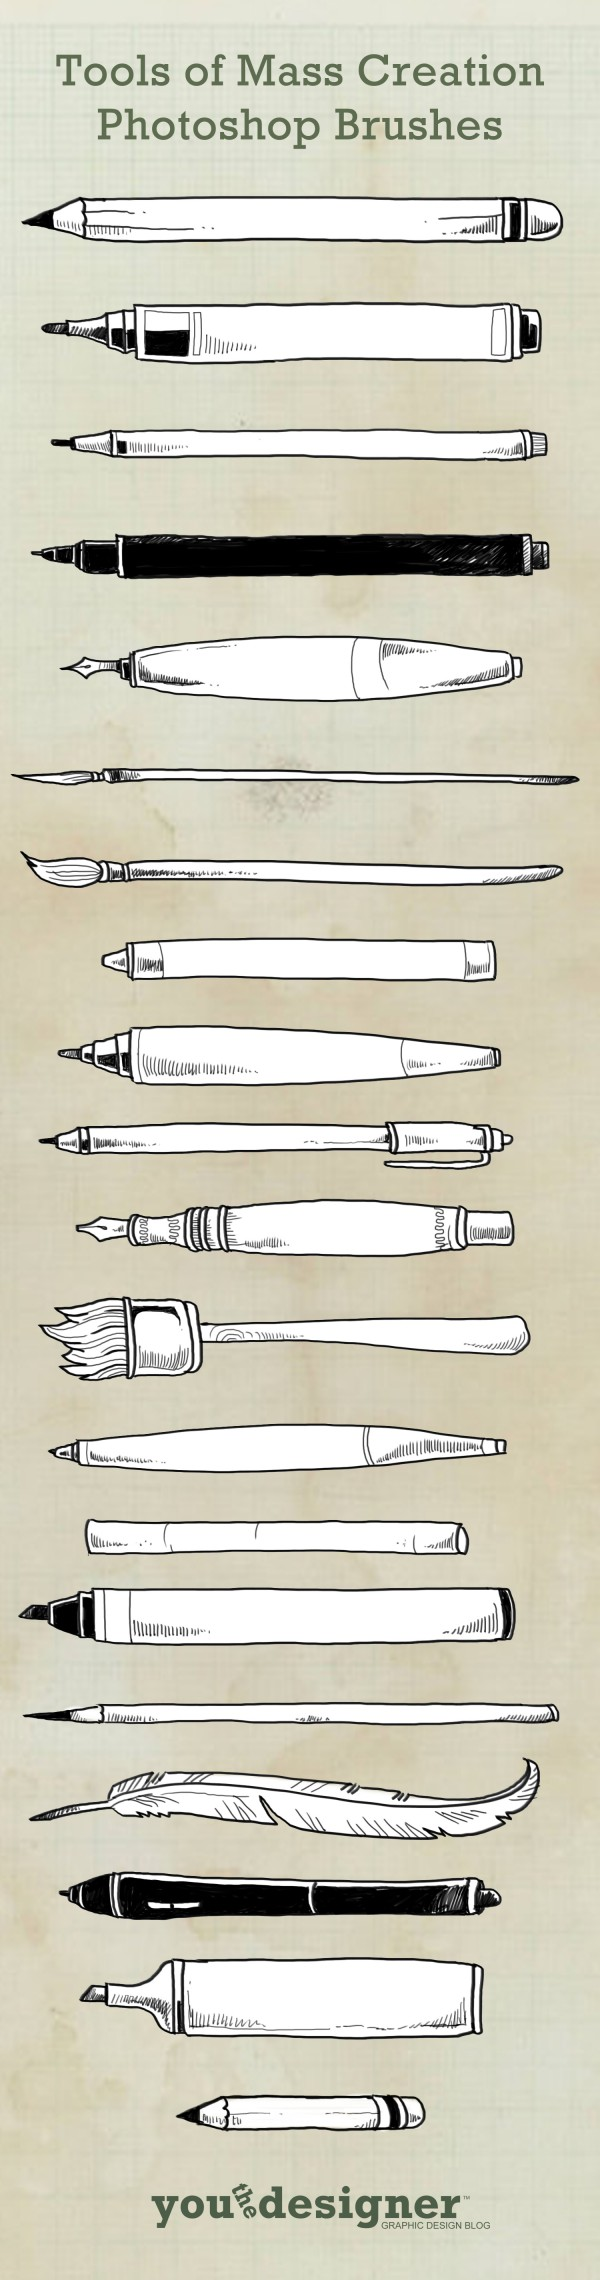 Tools of Mass Creation Photoshop Brushes by You The Designer